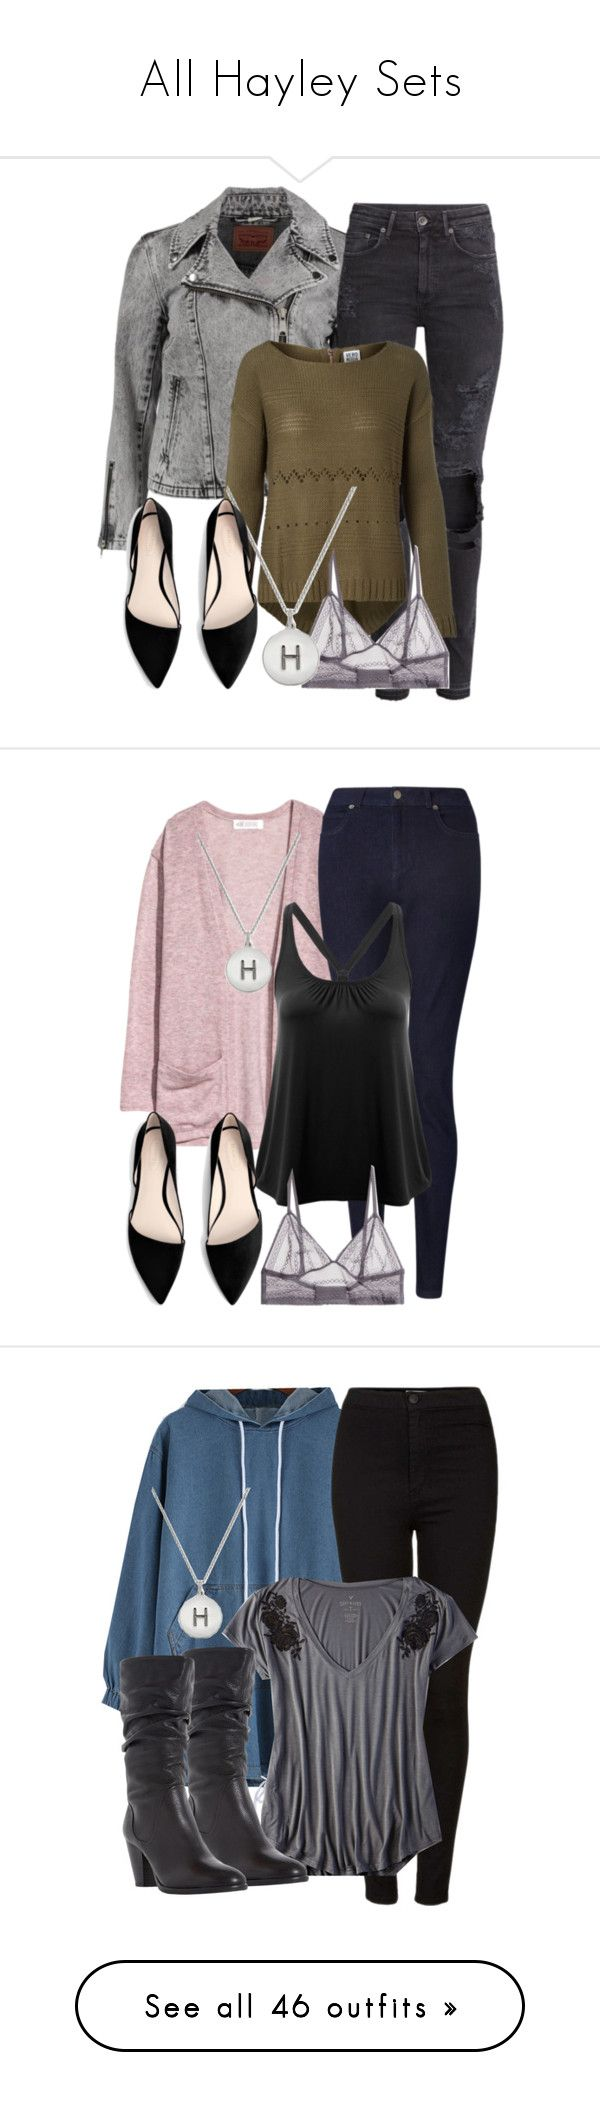 """""""All Hayley Sets"""" by fangsandfashion ❤ liked on Polyvore featuring Levi's, H&M, Vero Moda, Calvin Klein, Kate Spade, MANGO, John Lewis, Topshop, American Eagle Outfitters and Dune"""